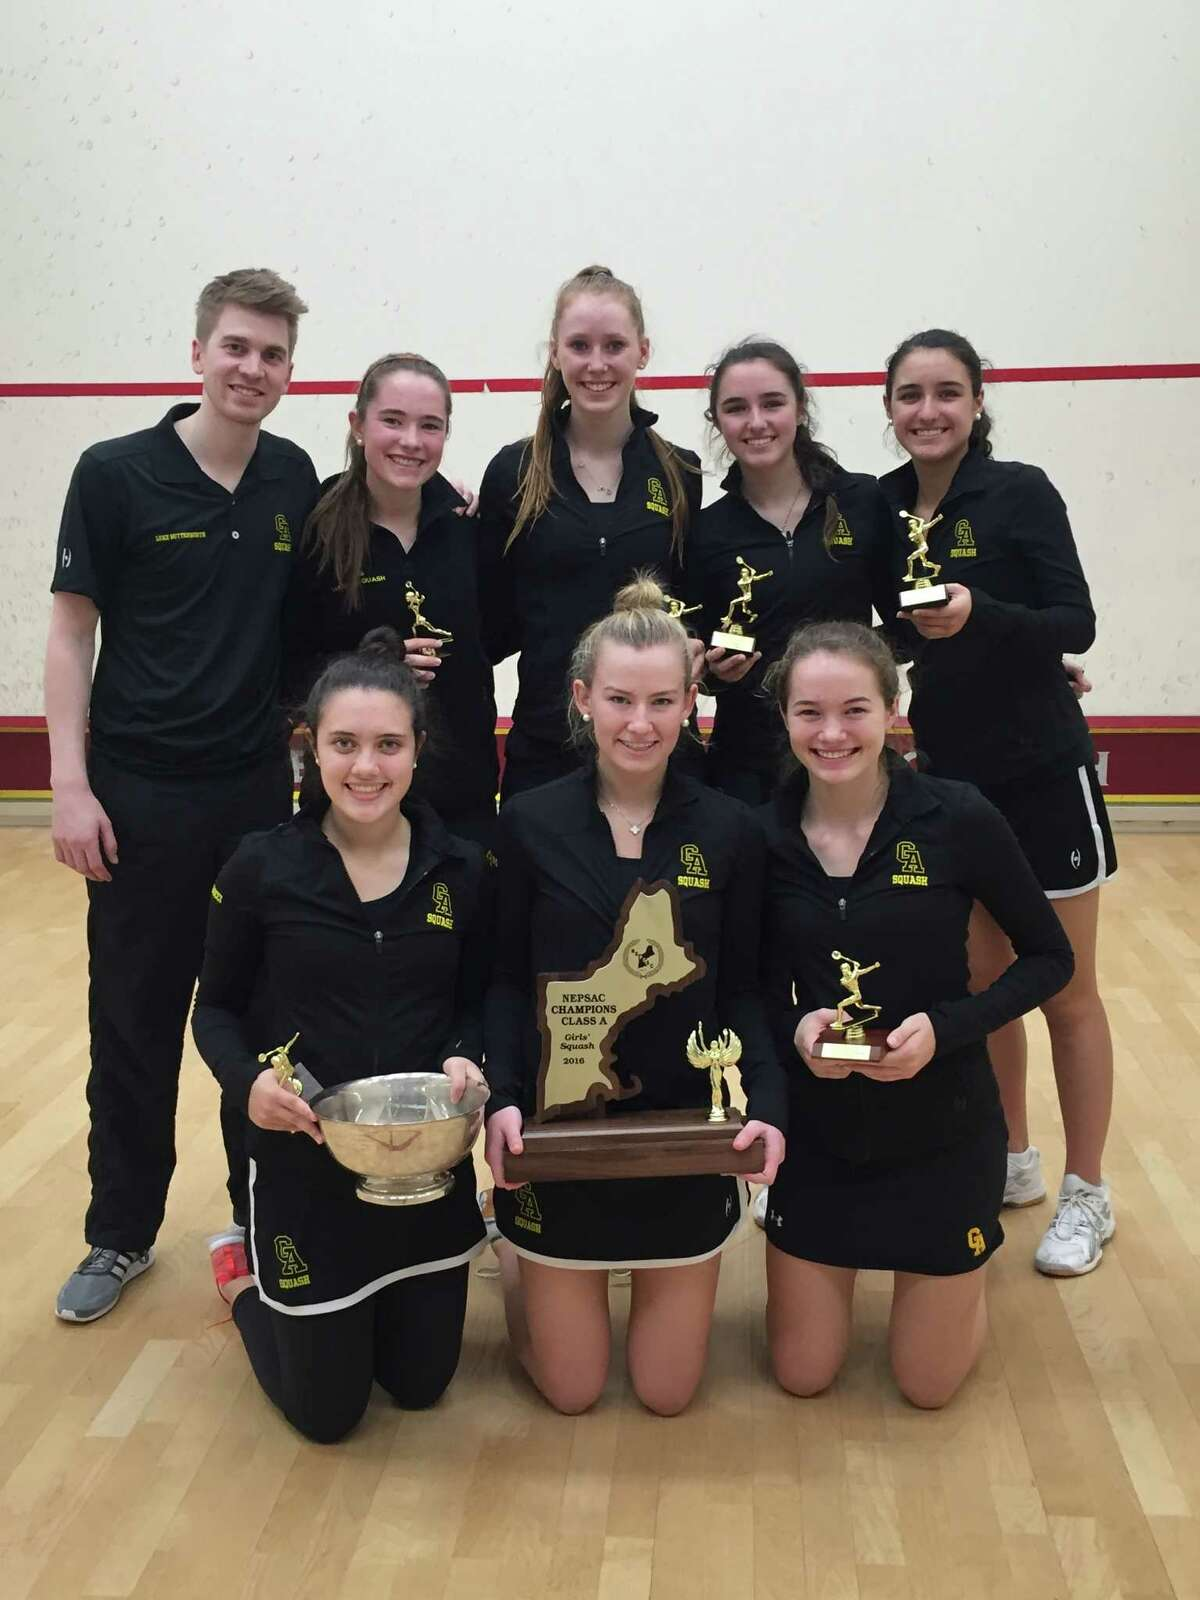 Greenwich Academy won the New England Interscholastic Squash Association Division A title for the fifth straight season Sunday at Phillips Exeter Academy.